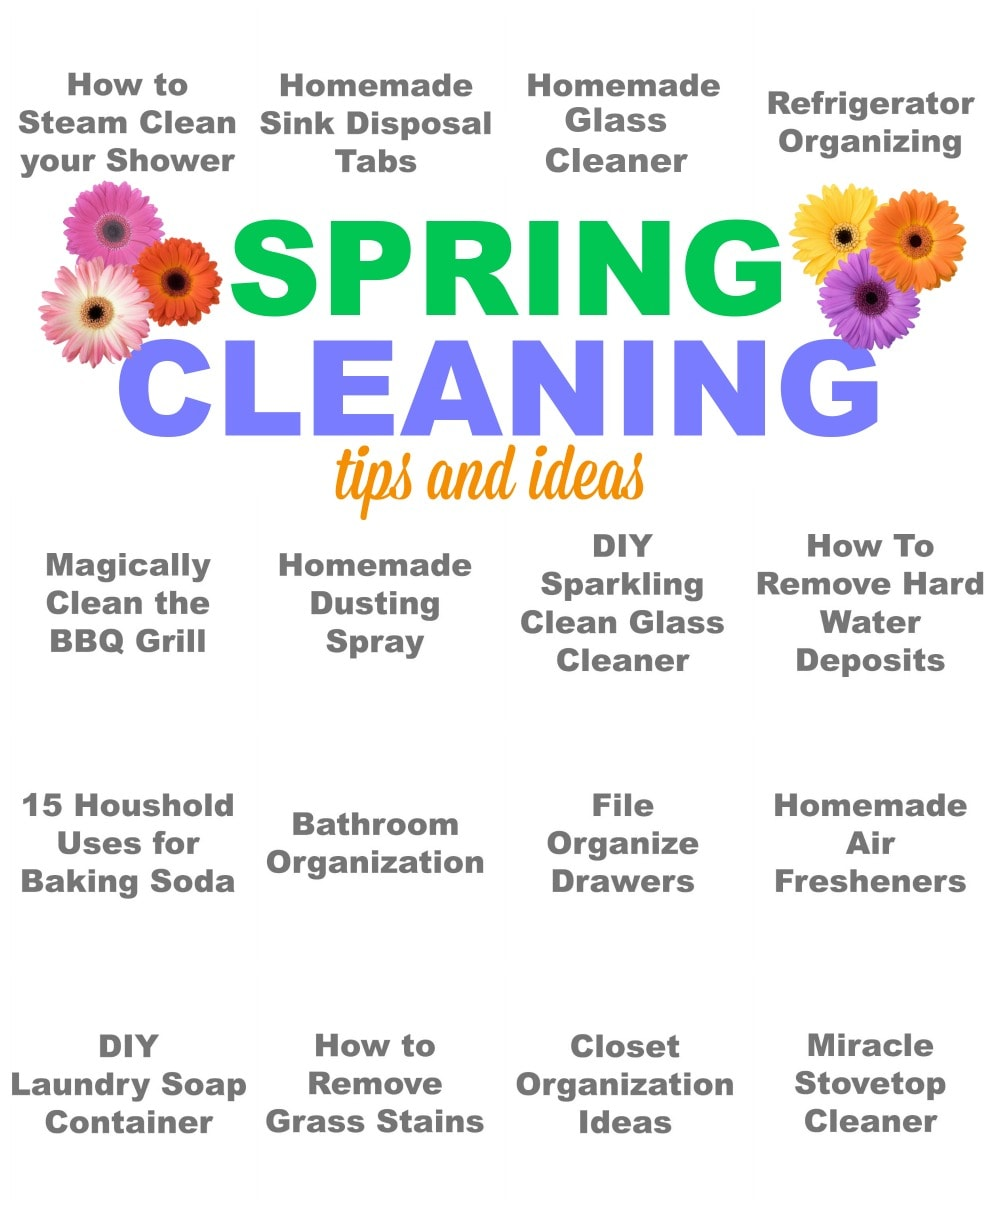 Spring Cleaning Ideas spring cleaning tips & ideas - pinkwhen